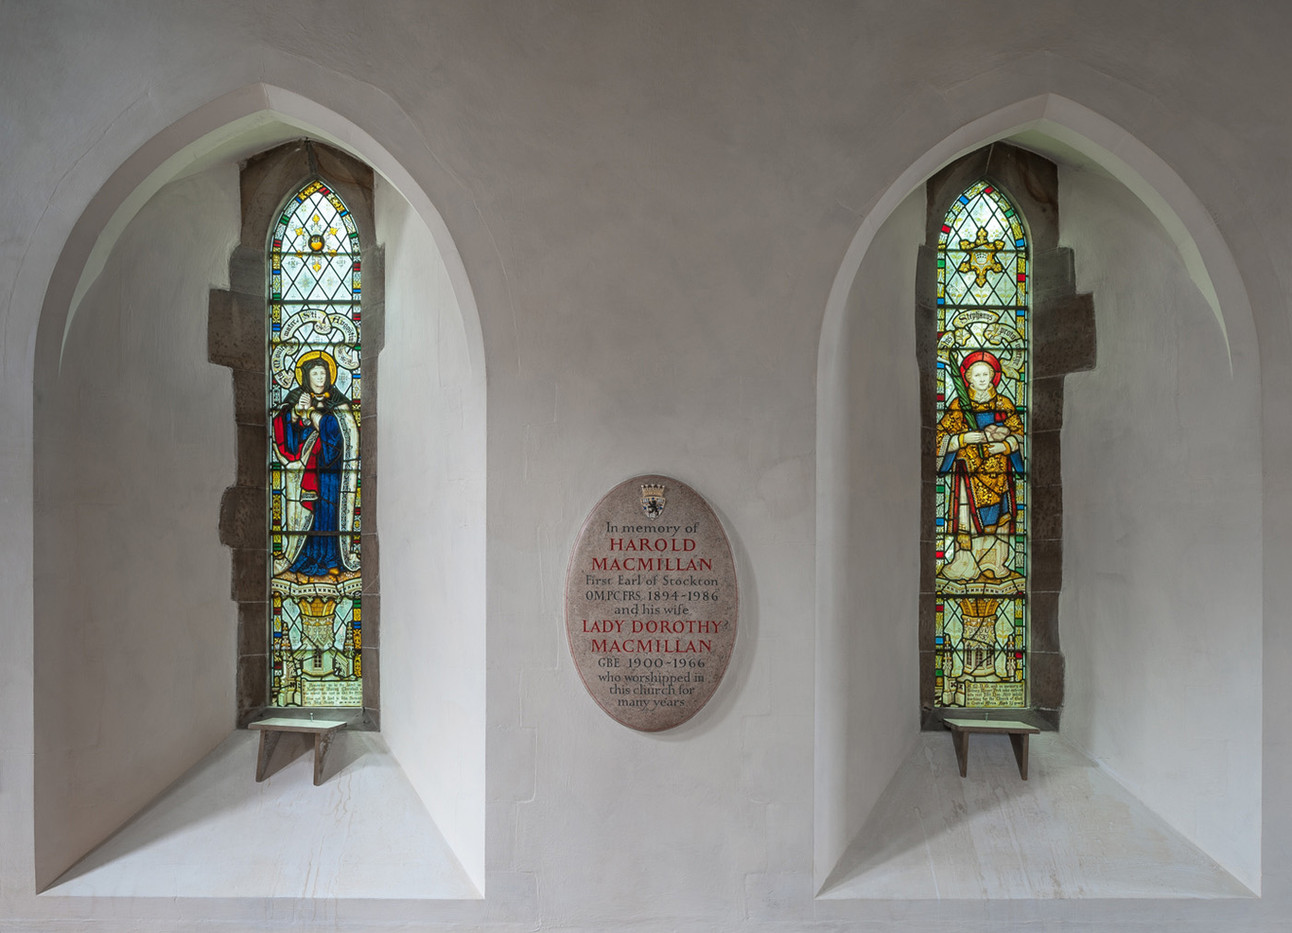 19 MEMORIAL PLAQUE AND WINDOWS ST  GILES CHURCH HORSTED KEYNES by Chris Rigby